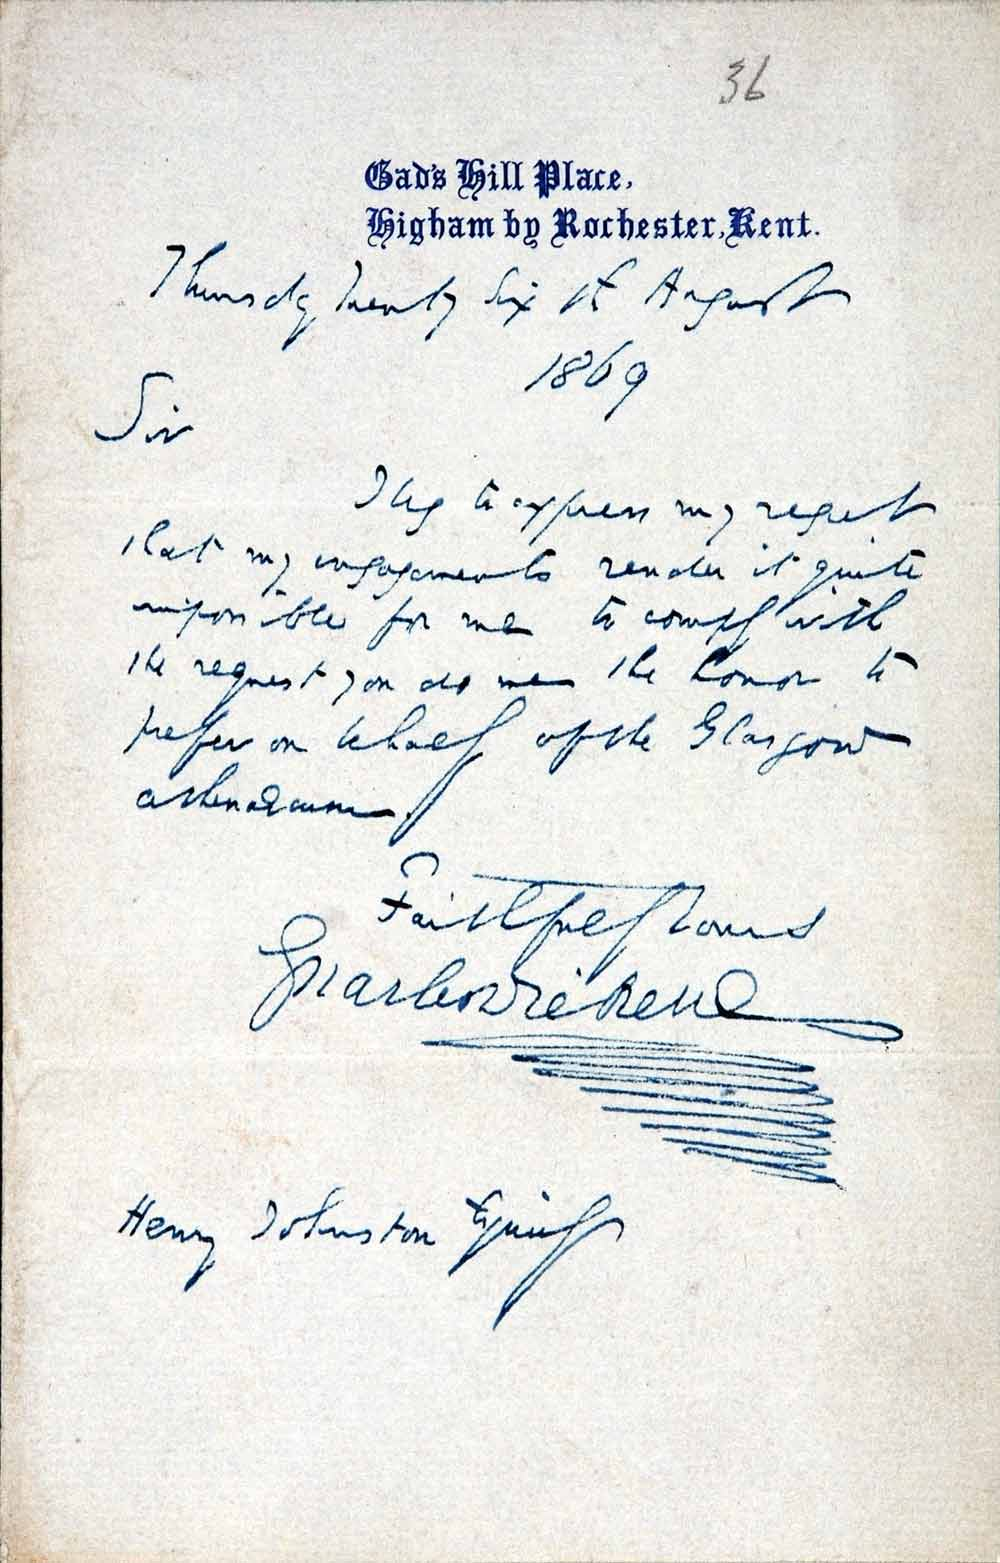 Letter. Charles Dickens to Henry Johnston, Gad's Hill Place, Higham by Rochester, Kent, 26 August 1869